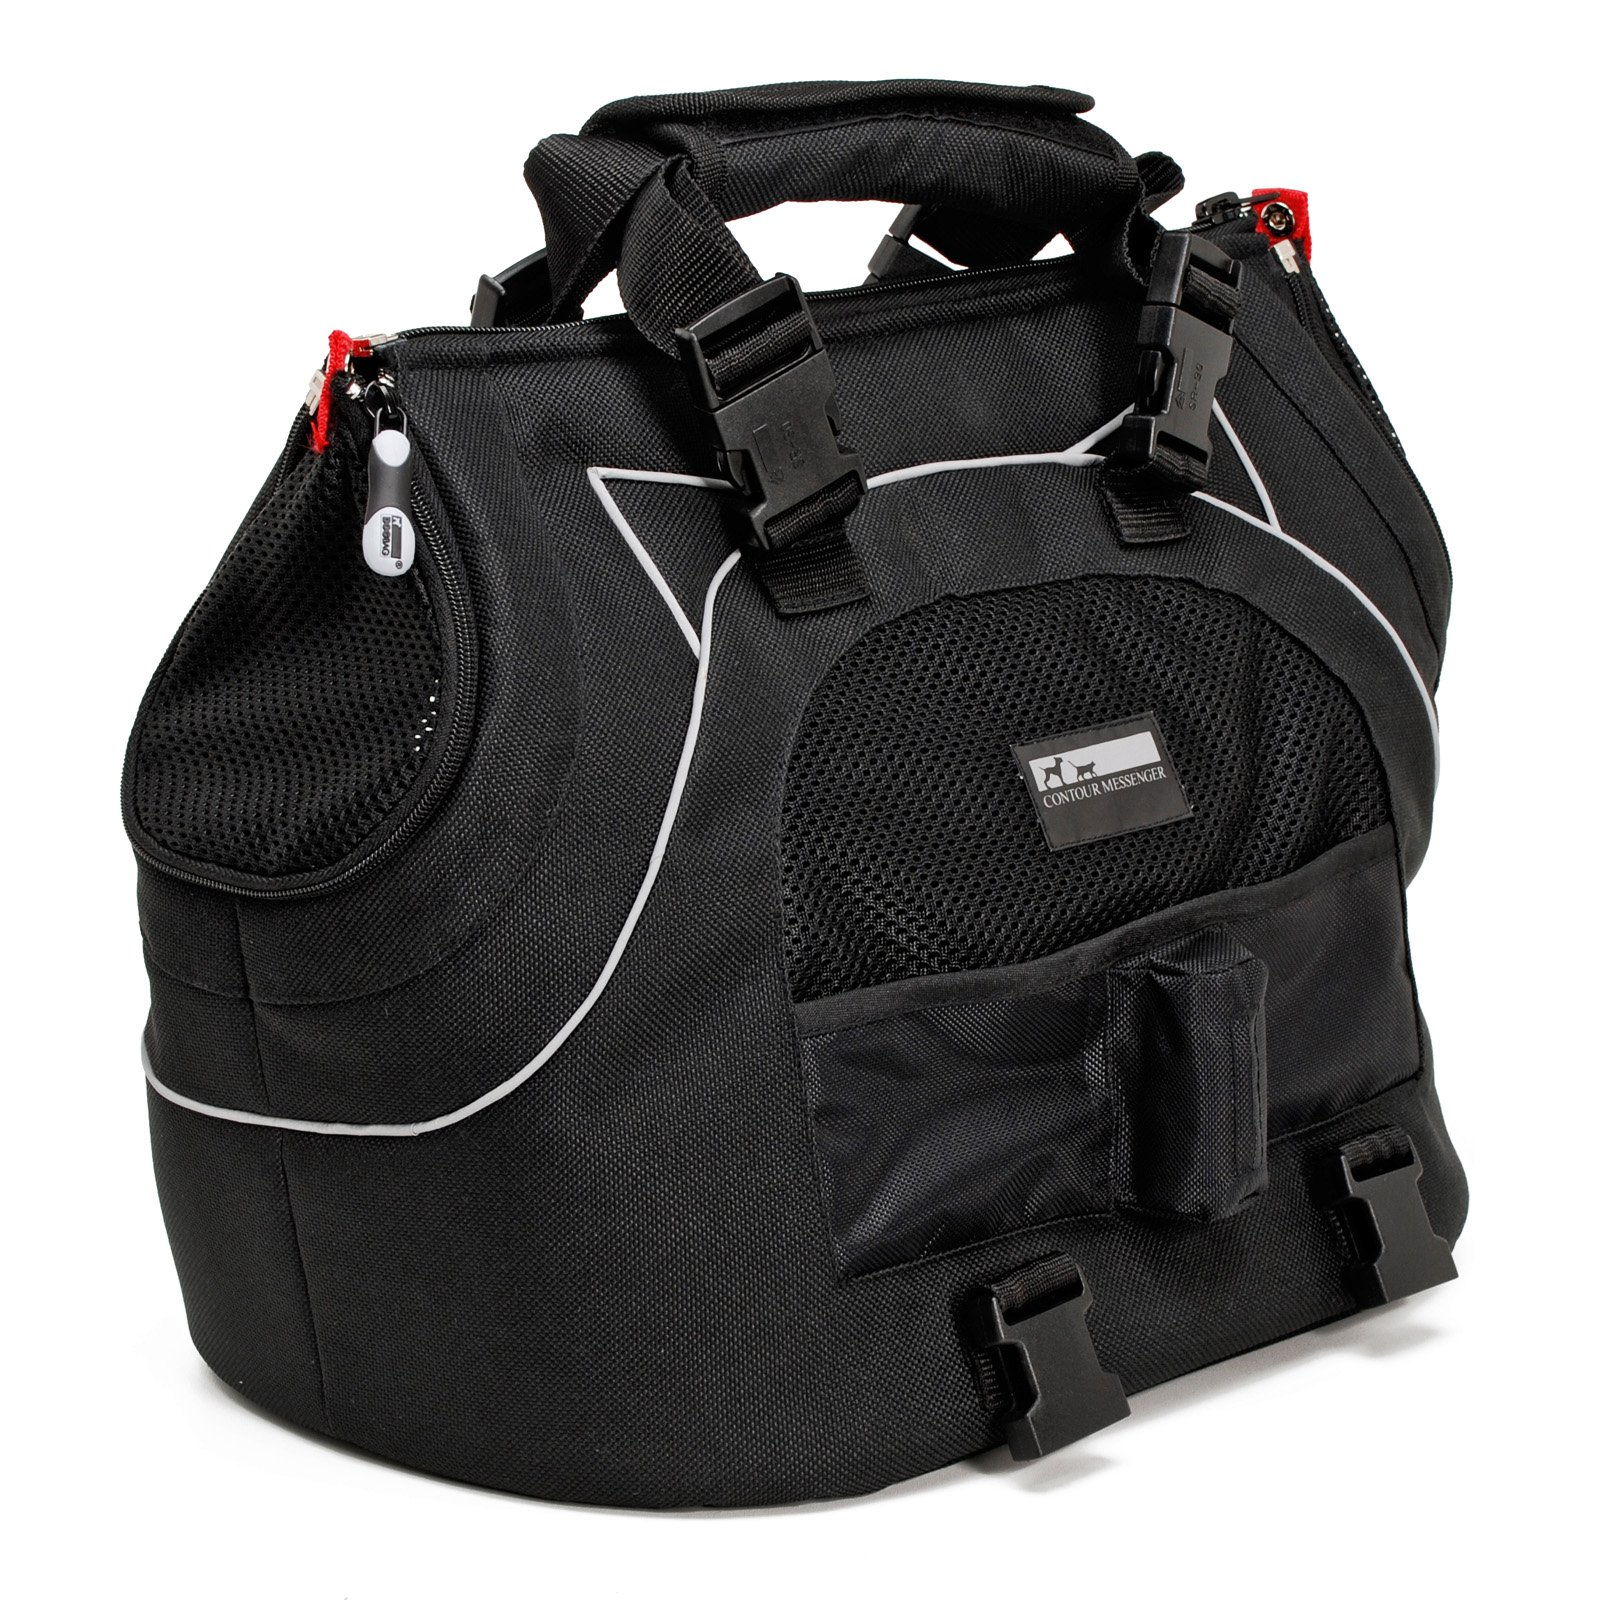 Pet Ego USB Plus Black Label Travel Bag - Airline Approved